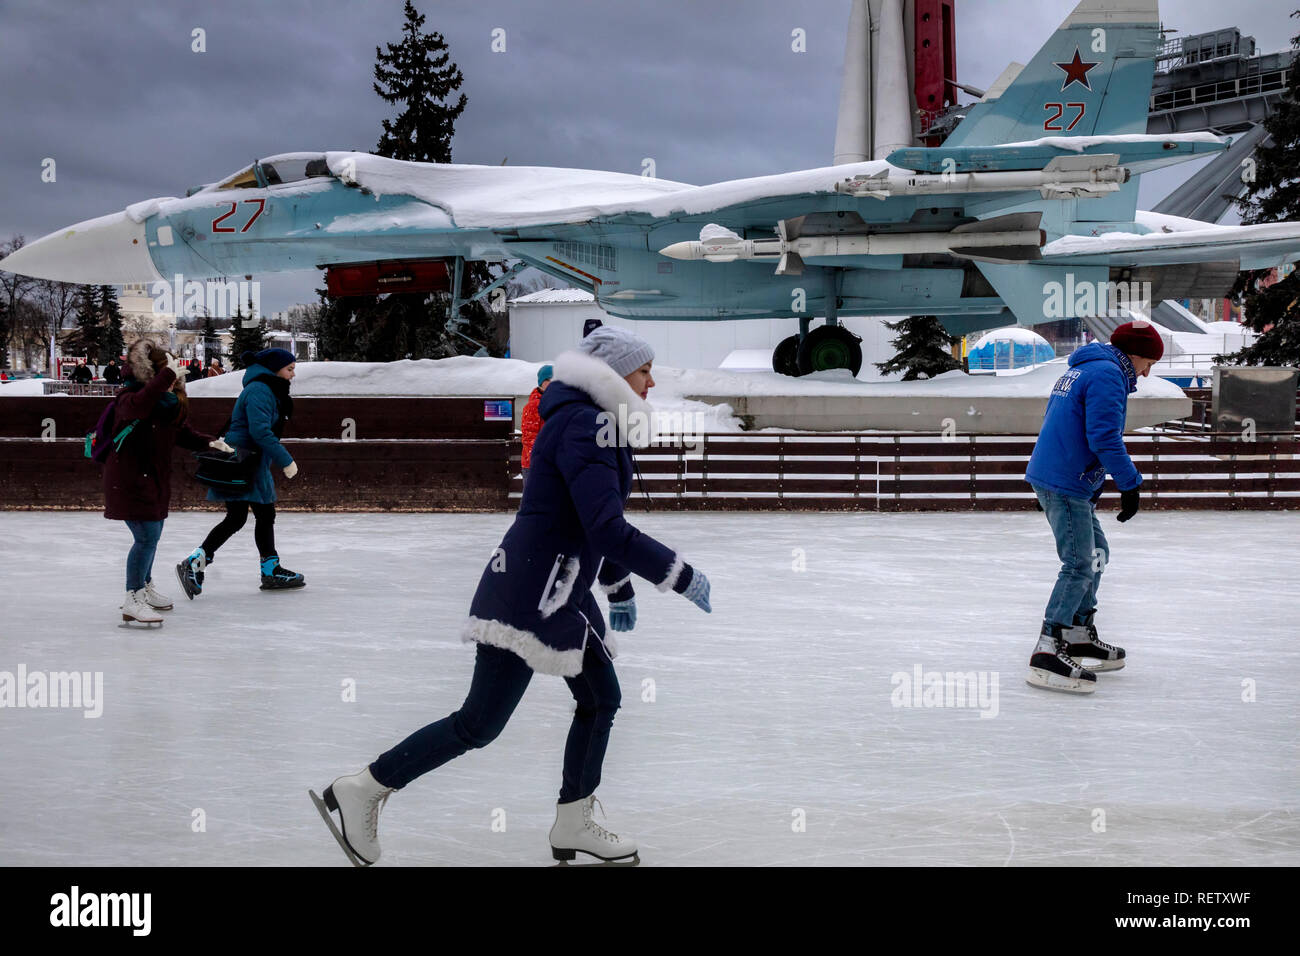 People skate on the ice rink on the background of the Sukhoi Su-27 fighter aircraft in the Industry Square at VDNKh in Moscow, Russia - Stock Image